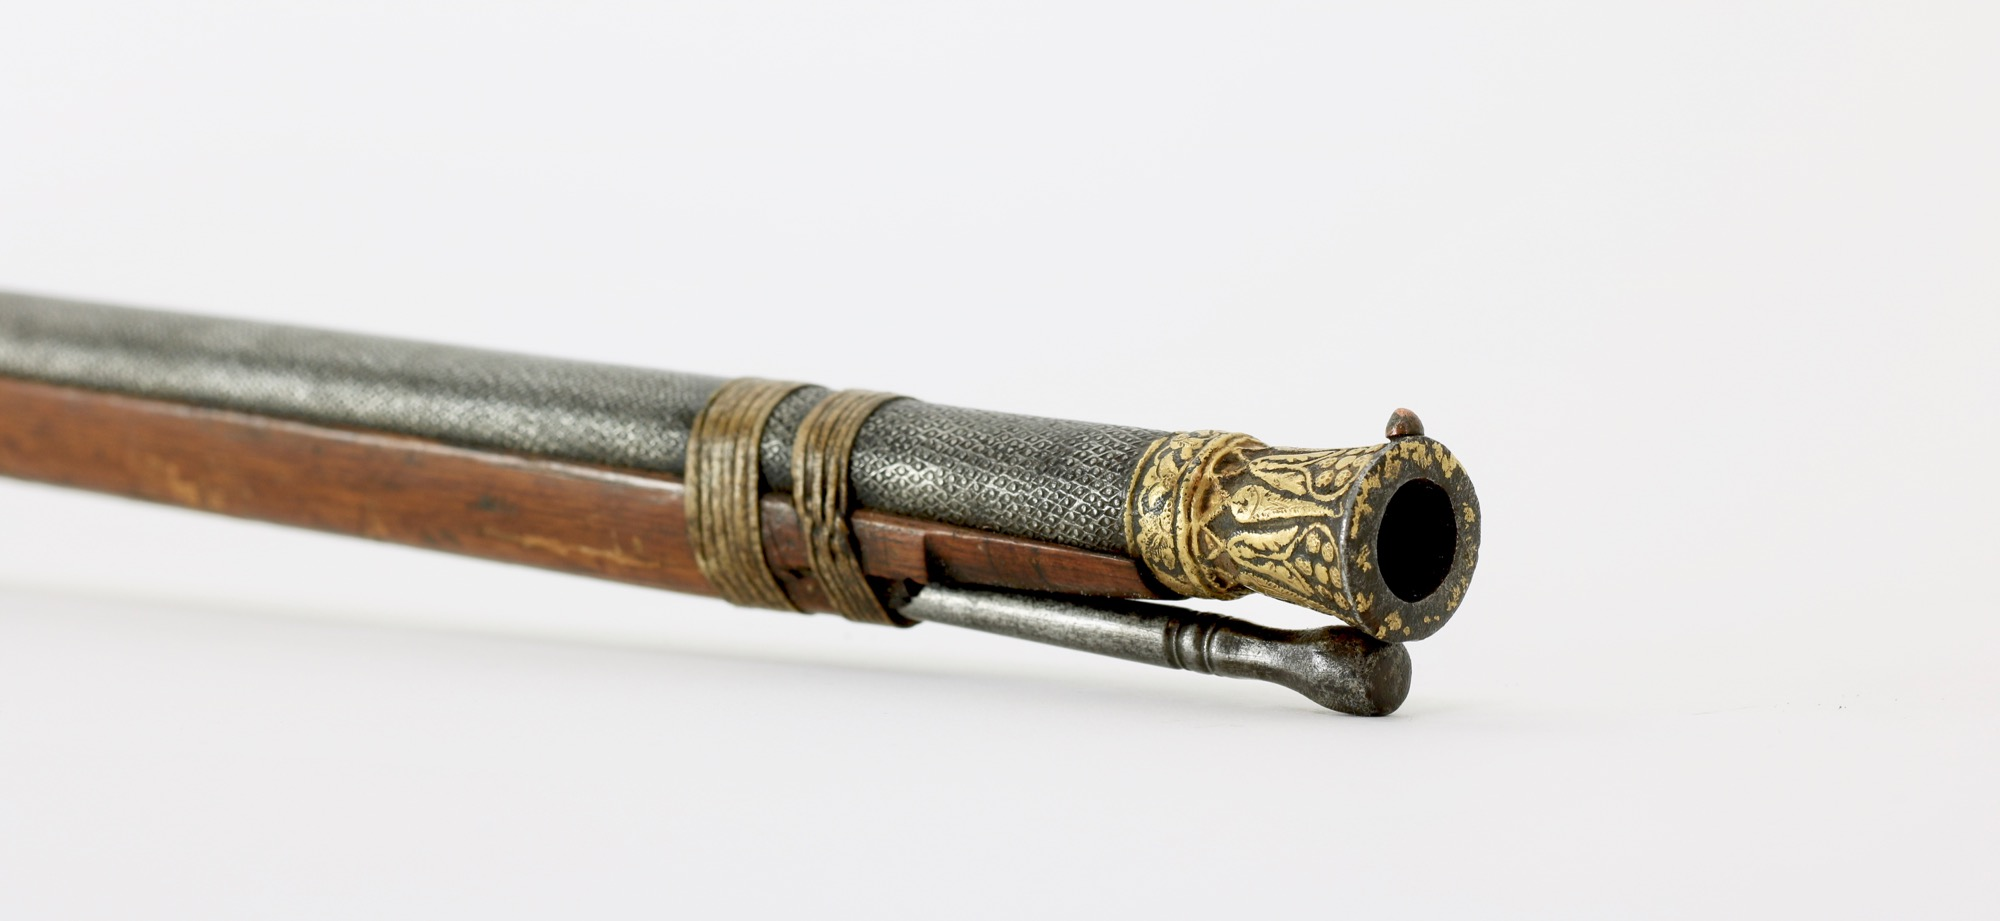 A very fine Indian matchlock musket, or toradar, with stippled barrel.